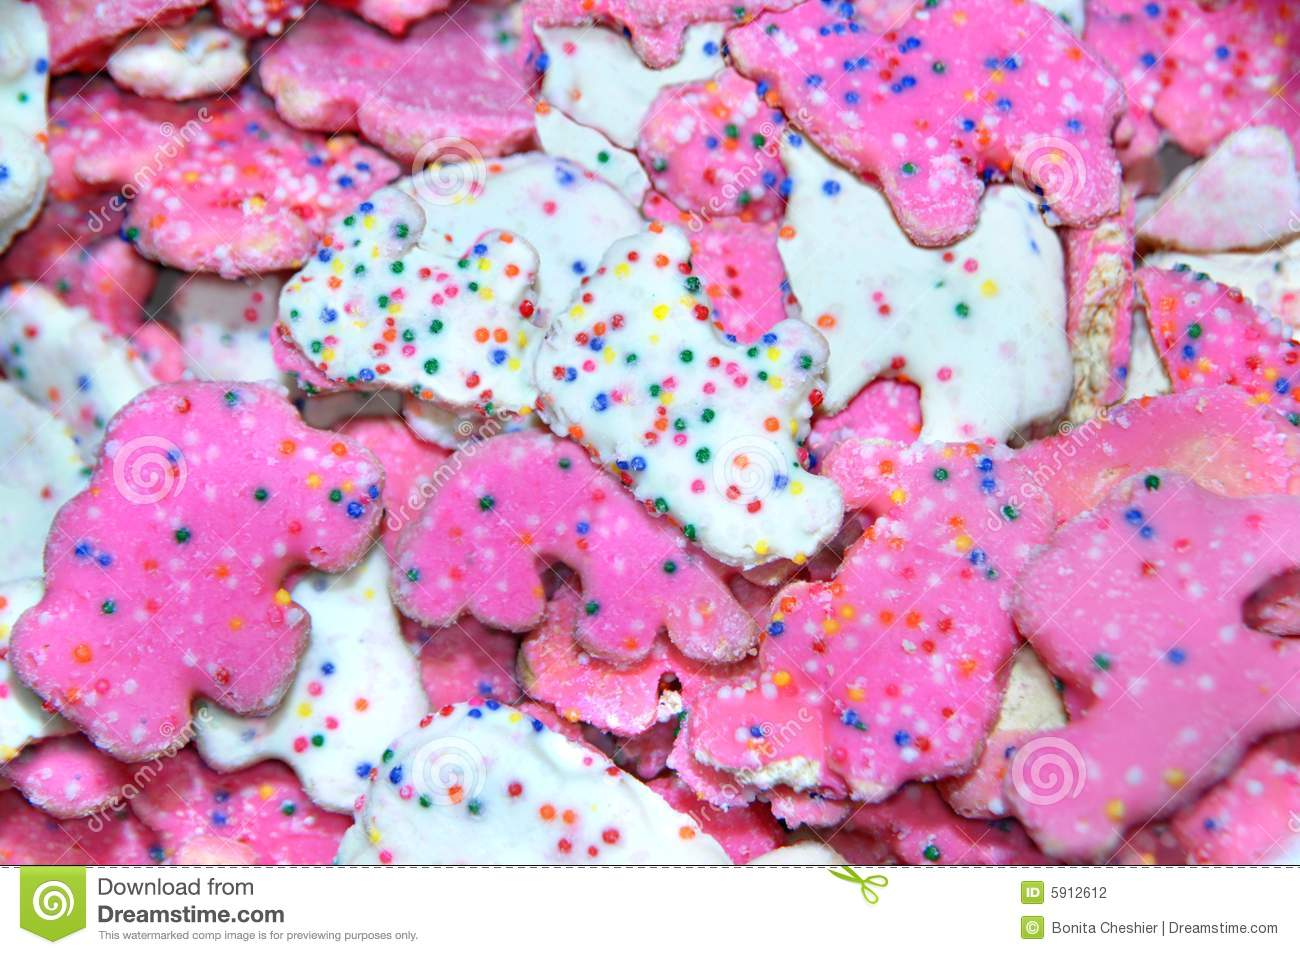 789 Animal Crackers Photos Free Royalty Free Stock Photos From Dreamstime